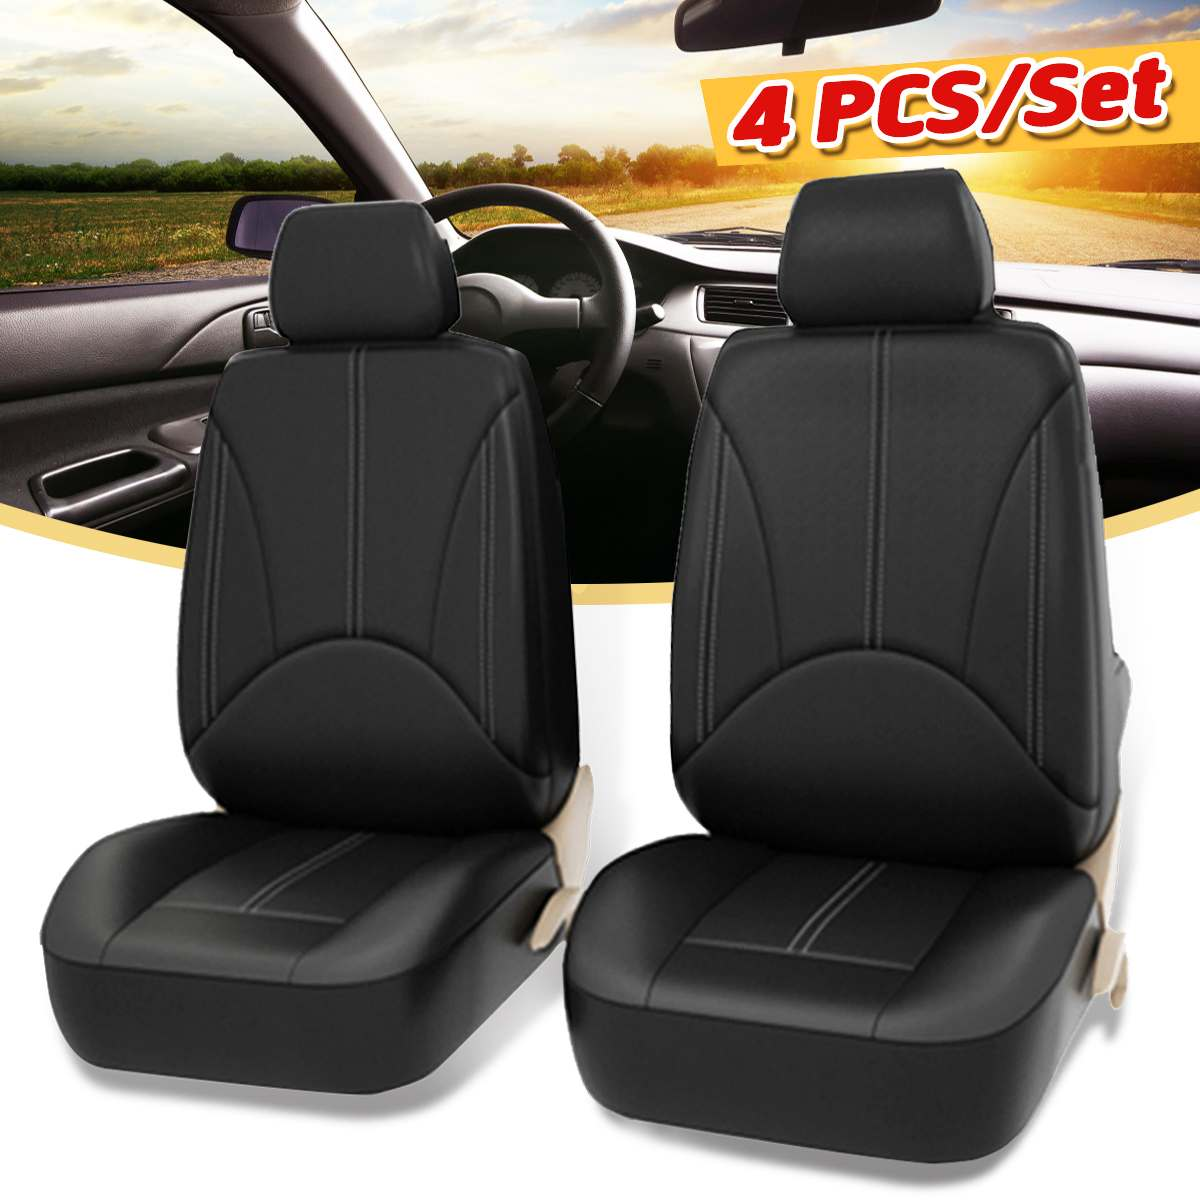 4PCS Universal font b Car b font Front Seat Cover Set PU Leather Breathable Protection Cover